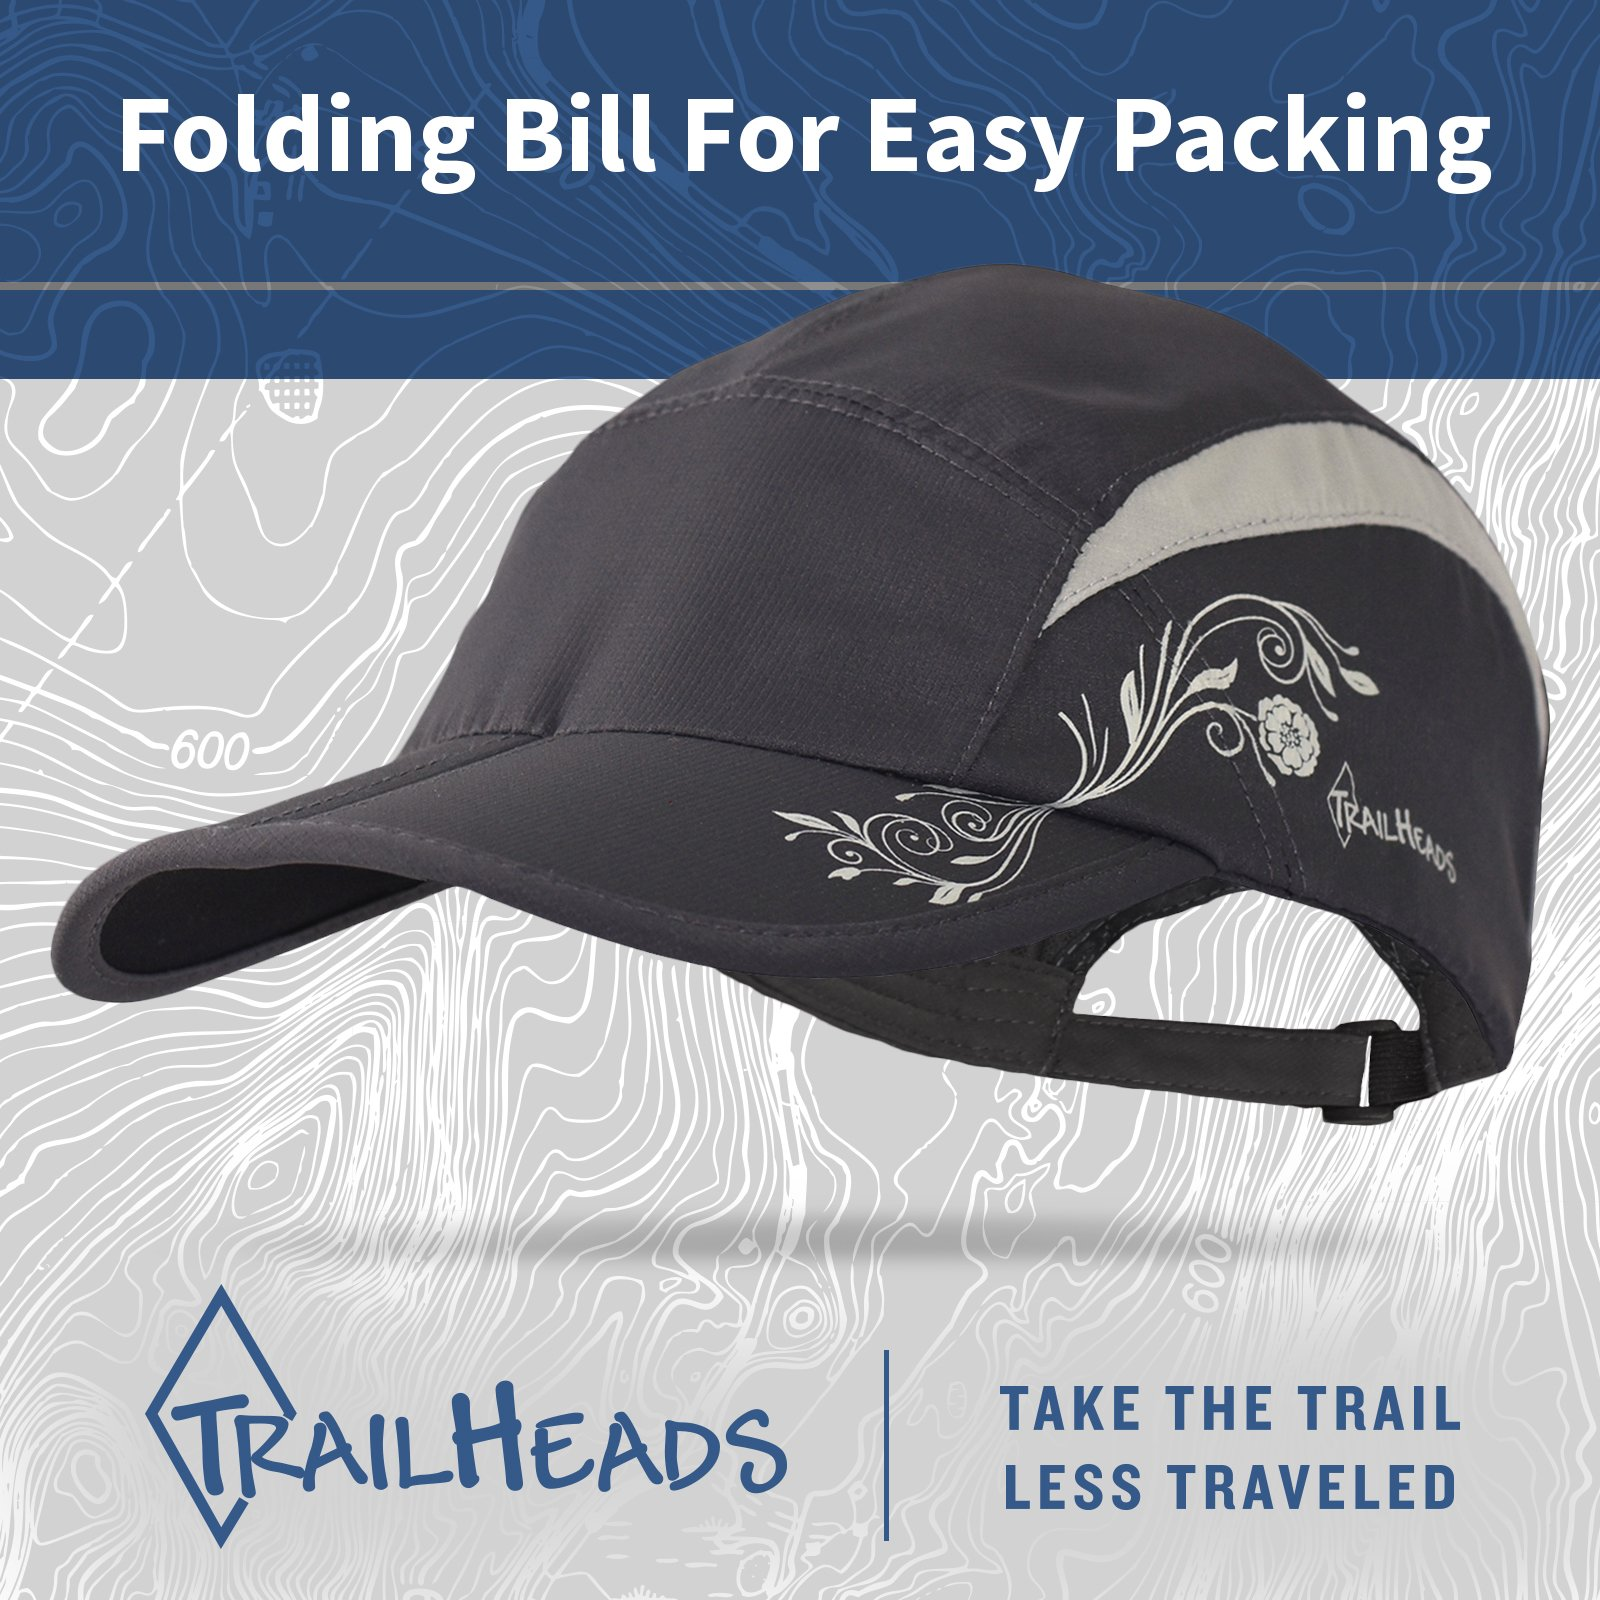 TrailHeads Lightweight Travel Hat | Summer Running Cap for Women | Folding Hat with UV Protection - Medium/Large by TrailHeads (Image #5)